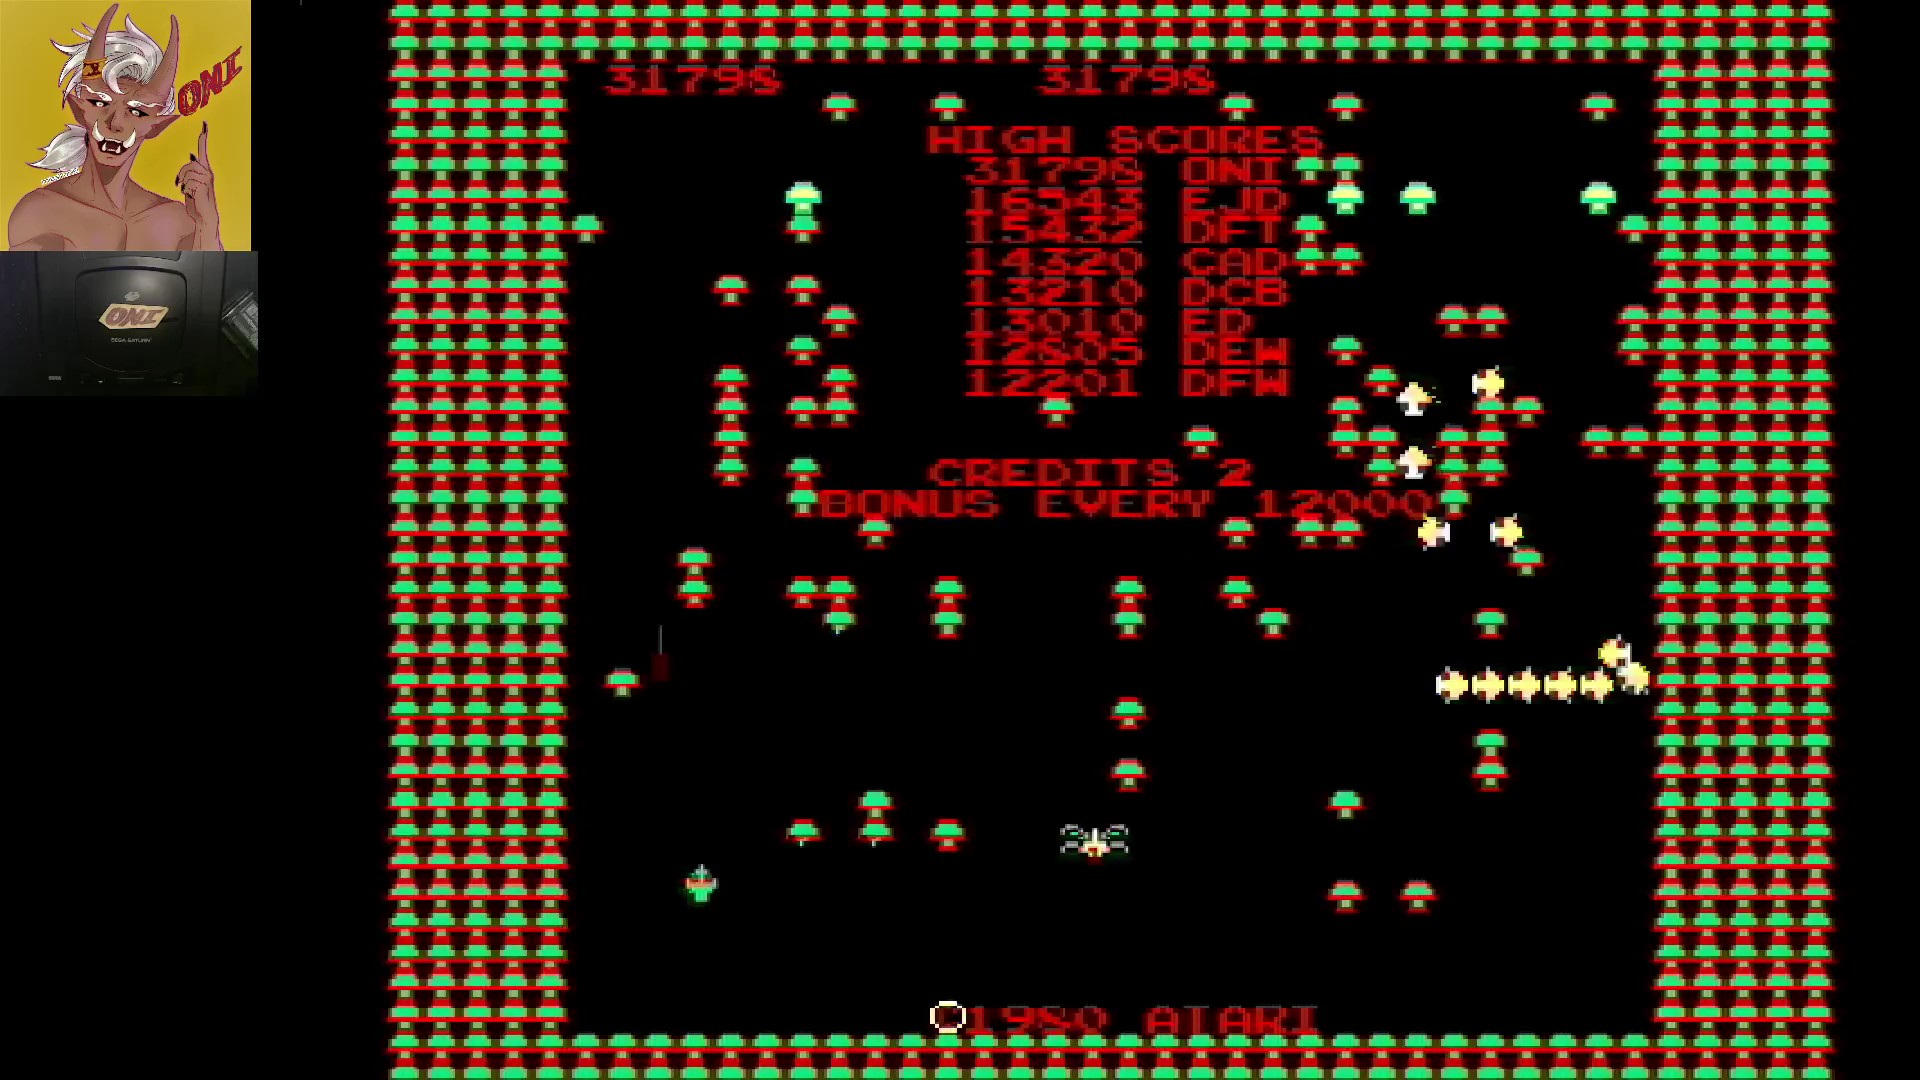 Arcade`s Greatest Hits: The Atari Collection 1: Centipede 31,798 points